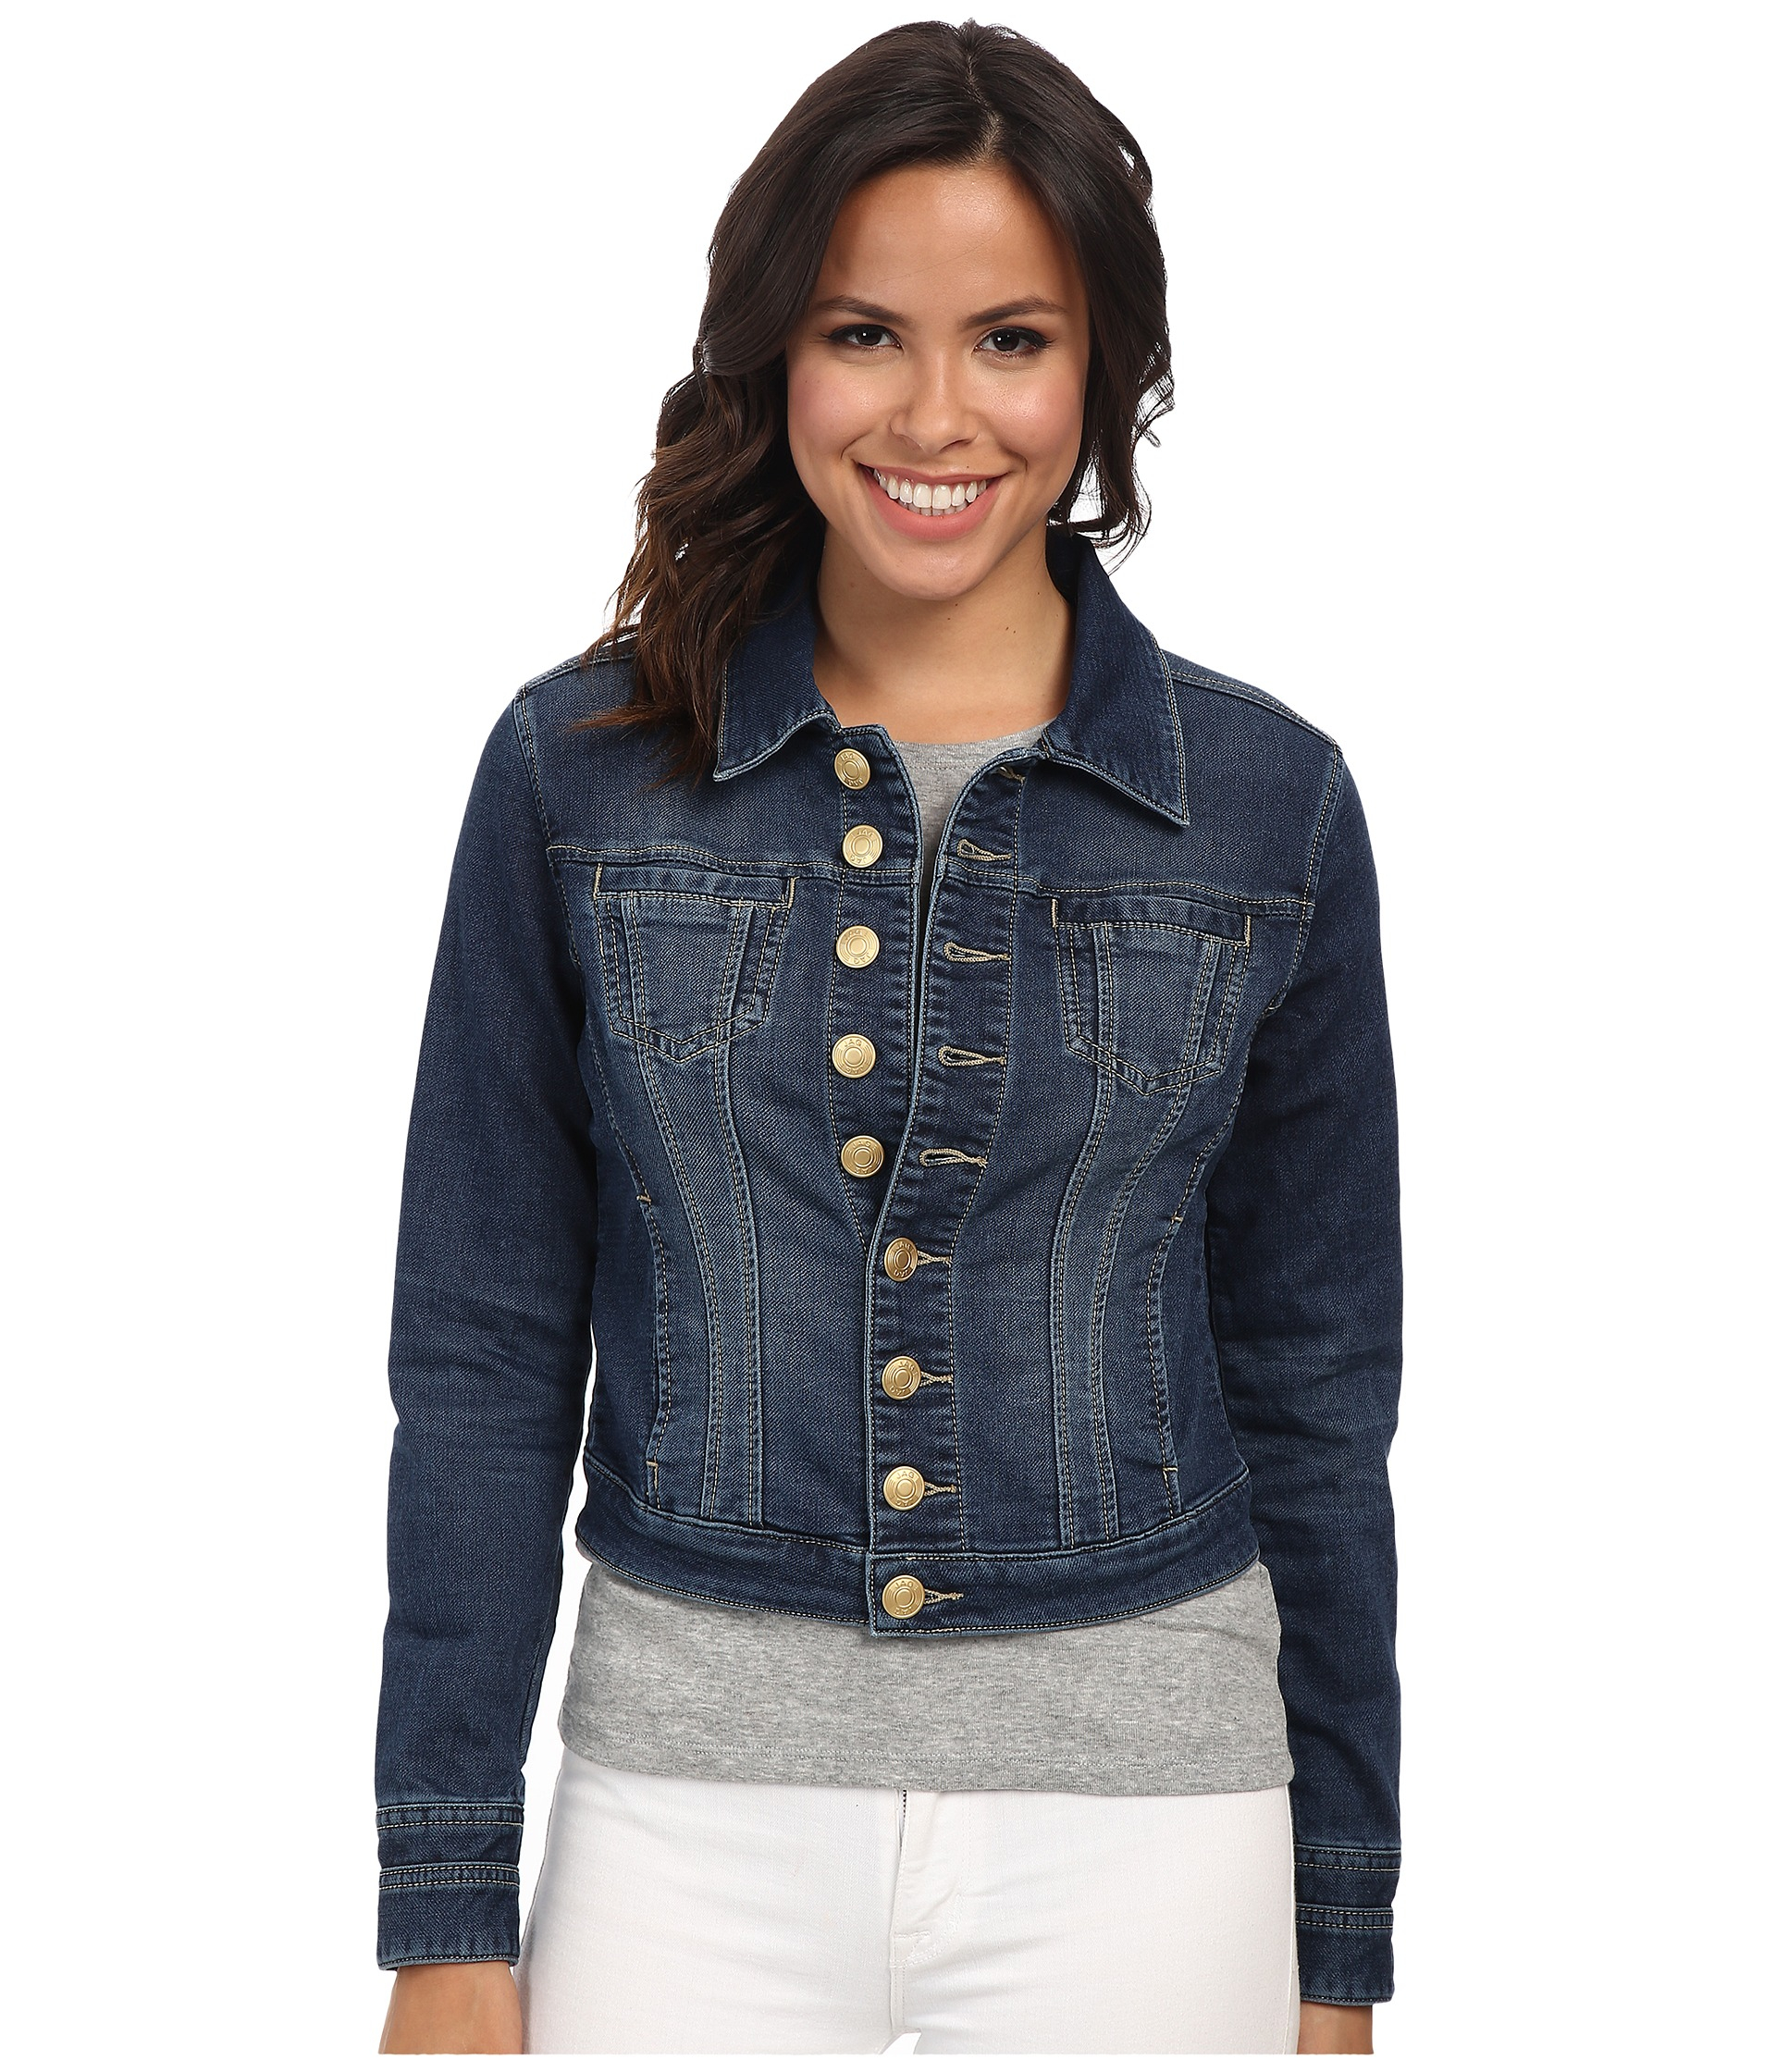 Jag jeans Savannah Jacket in Blue - Save 56% | Lyst